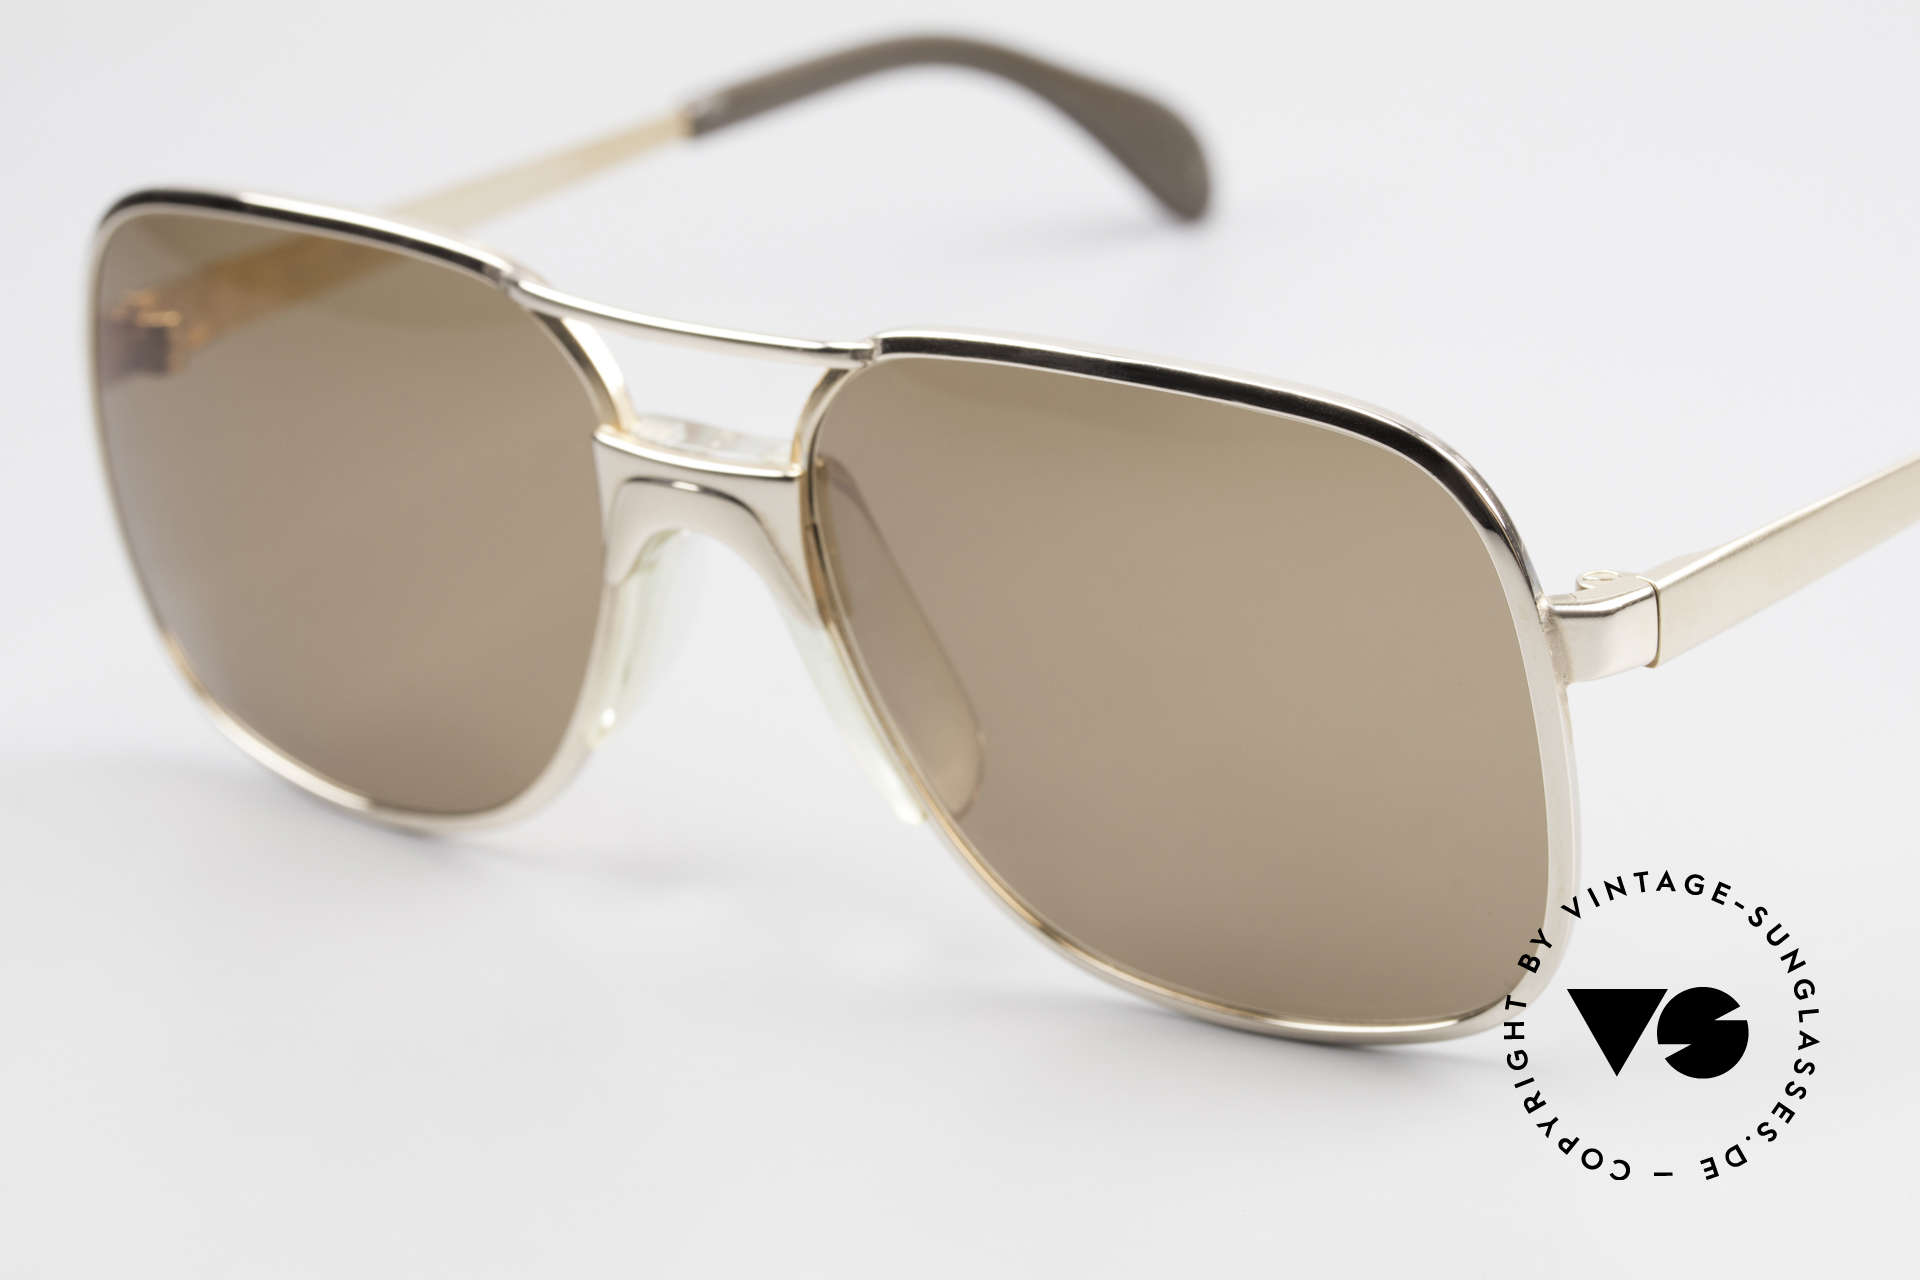 Metzler 7680 Small 80's Frame Gold Plated, never worn (like all our old Metzler sunglasses), Made for Men